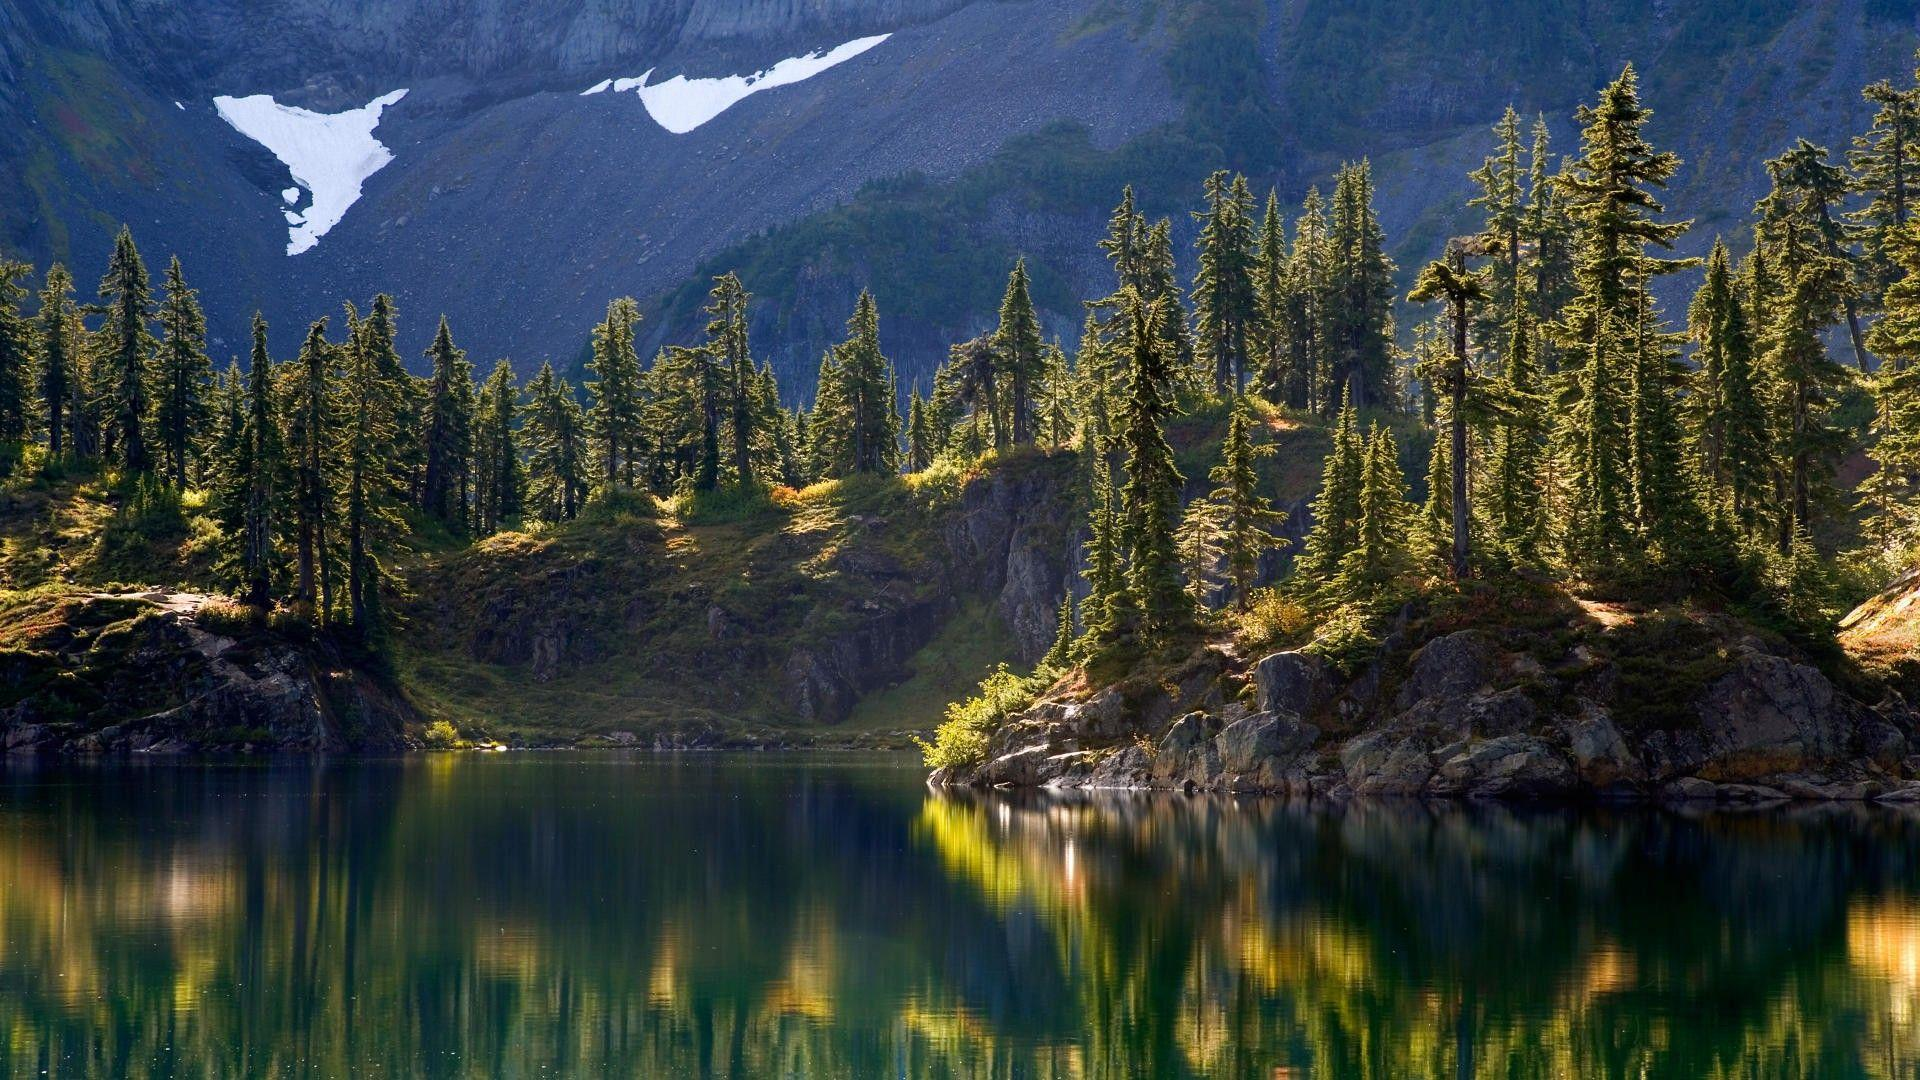 Baker wilderness washington mount lake hayes backgrounds landscape ...